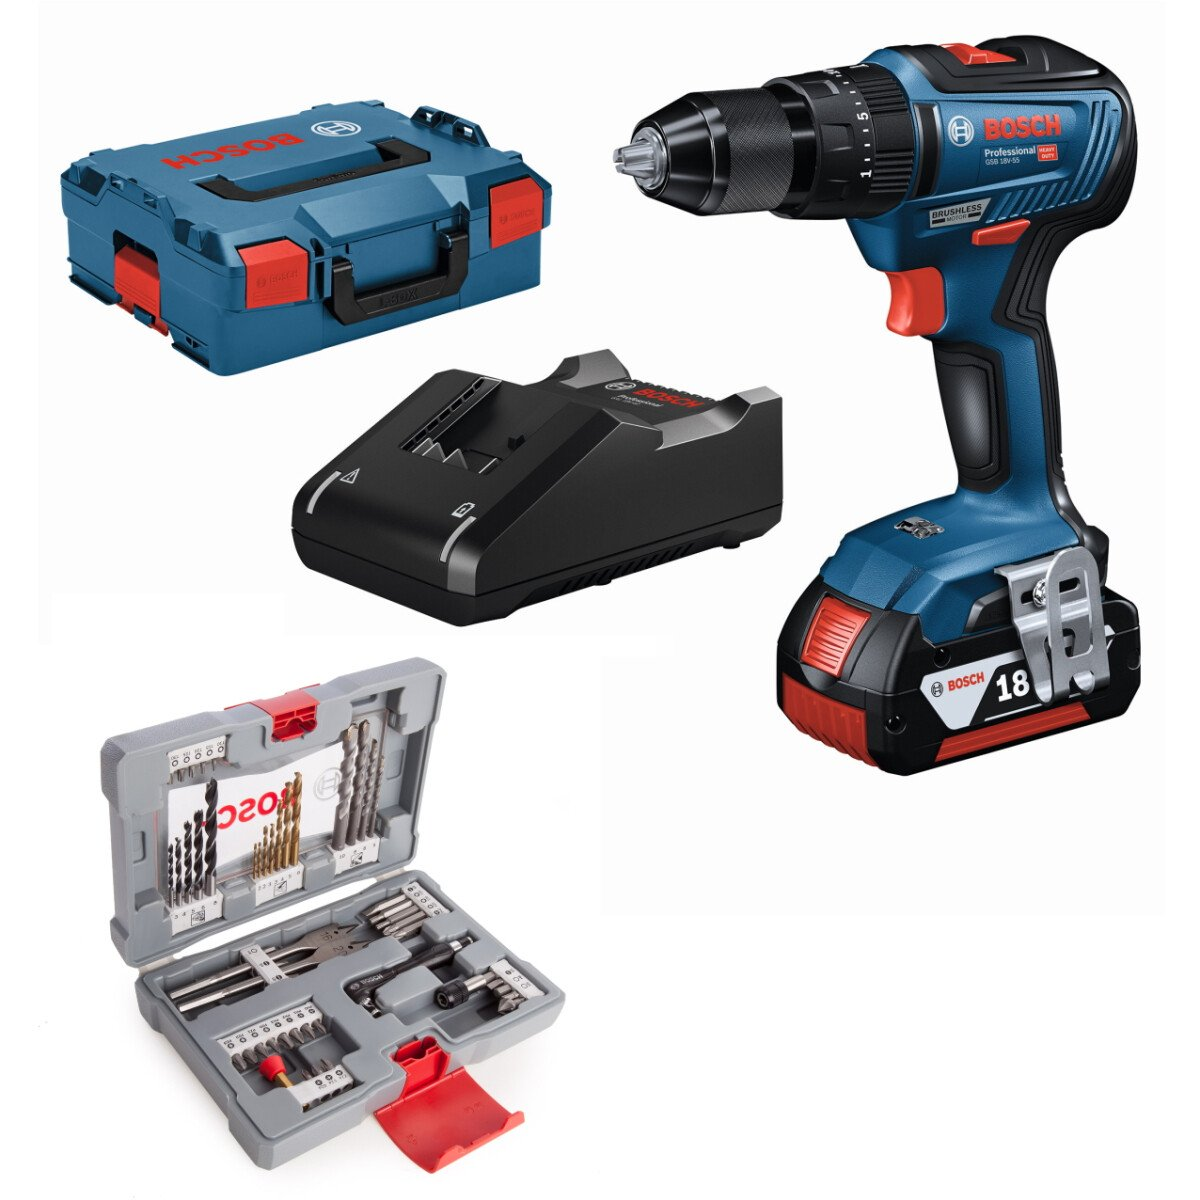 Bosch GSB 18V-55 18V with 49pc Accessory set Brushless 2 Speed Combi Drill with Metal Chuck 2x2.0Ah Batteries in L-Boxx Connection Ready